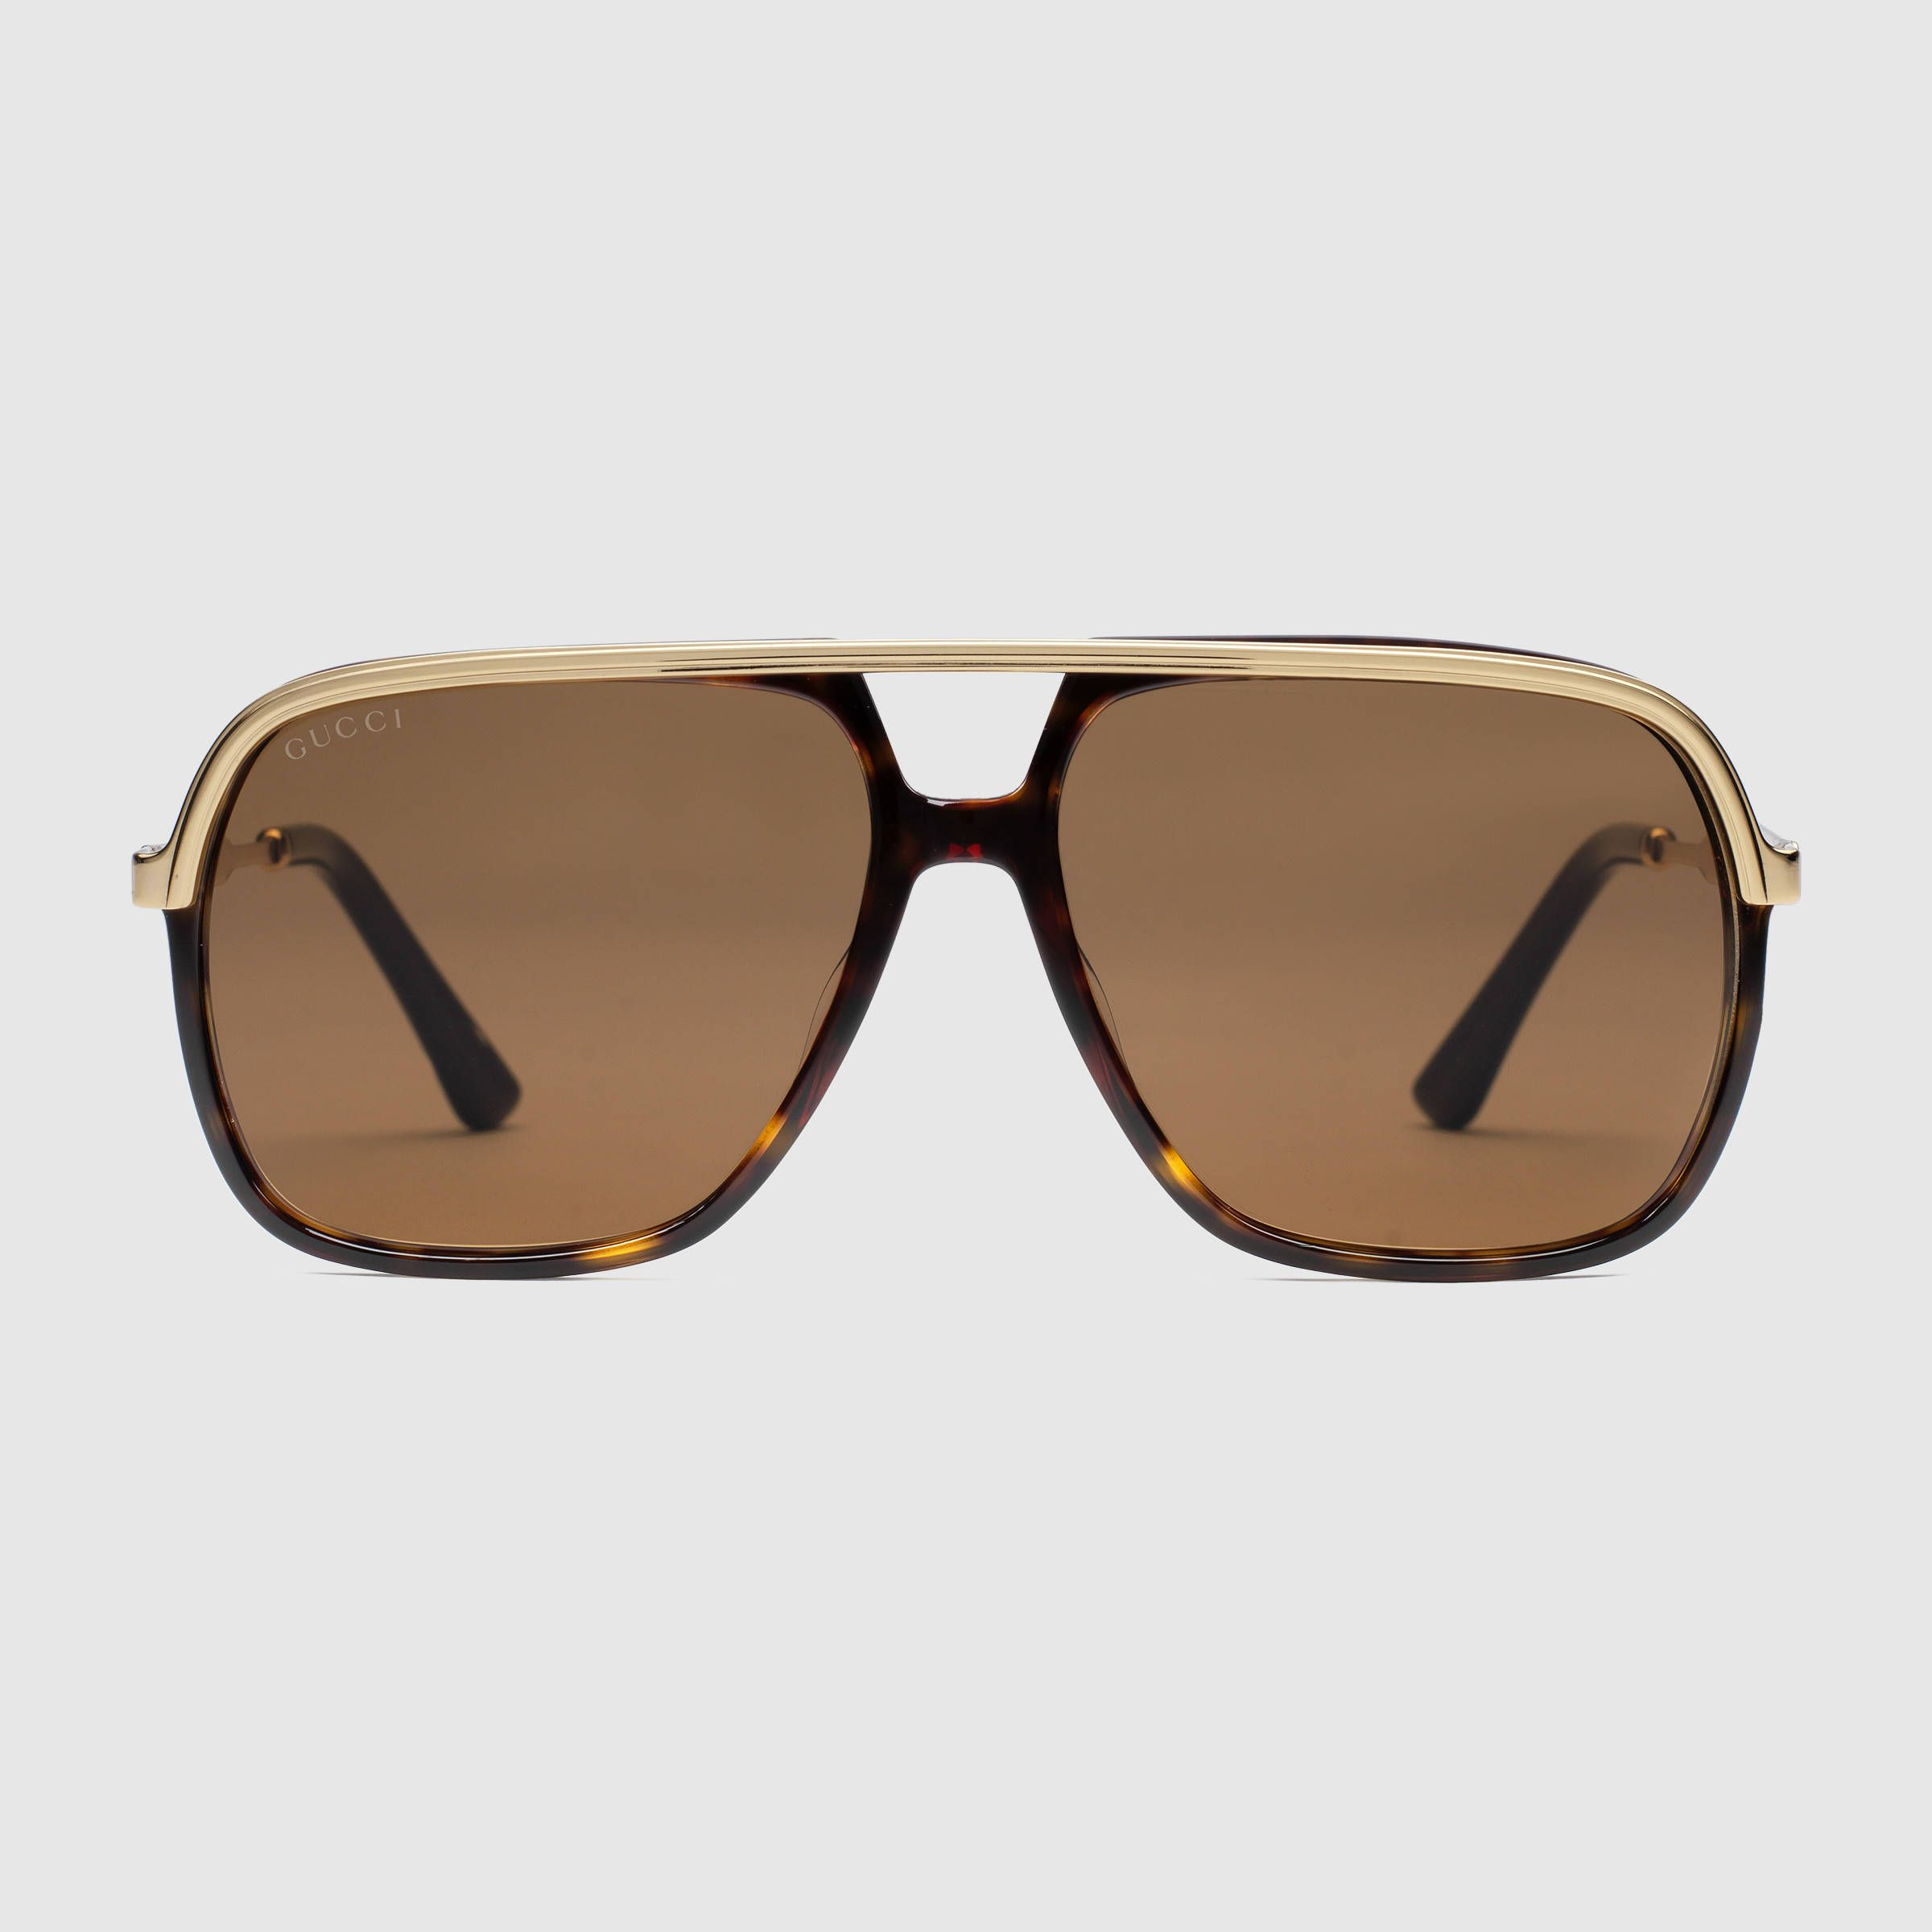 1608be07eb5  400 GUCCI Sunglasses - SOLD by GUCCI - affiliate - Rectangular  Tortoiseshell metal frame Gold metal temples with enamel Web detail Brown  lens100% UVA UVB ...